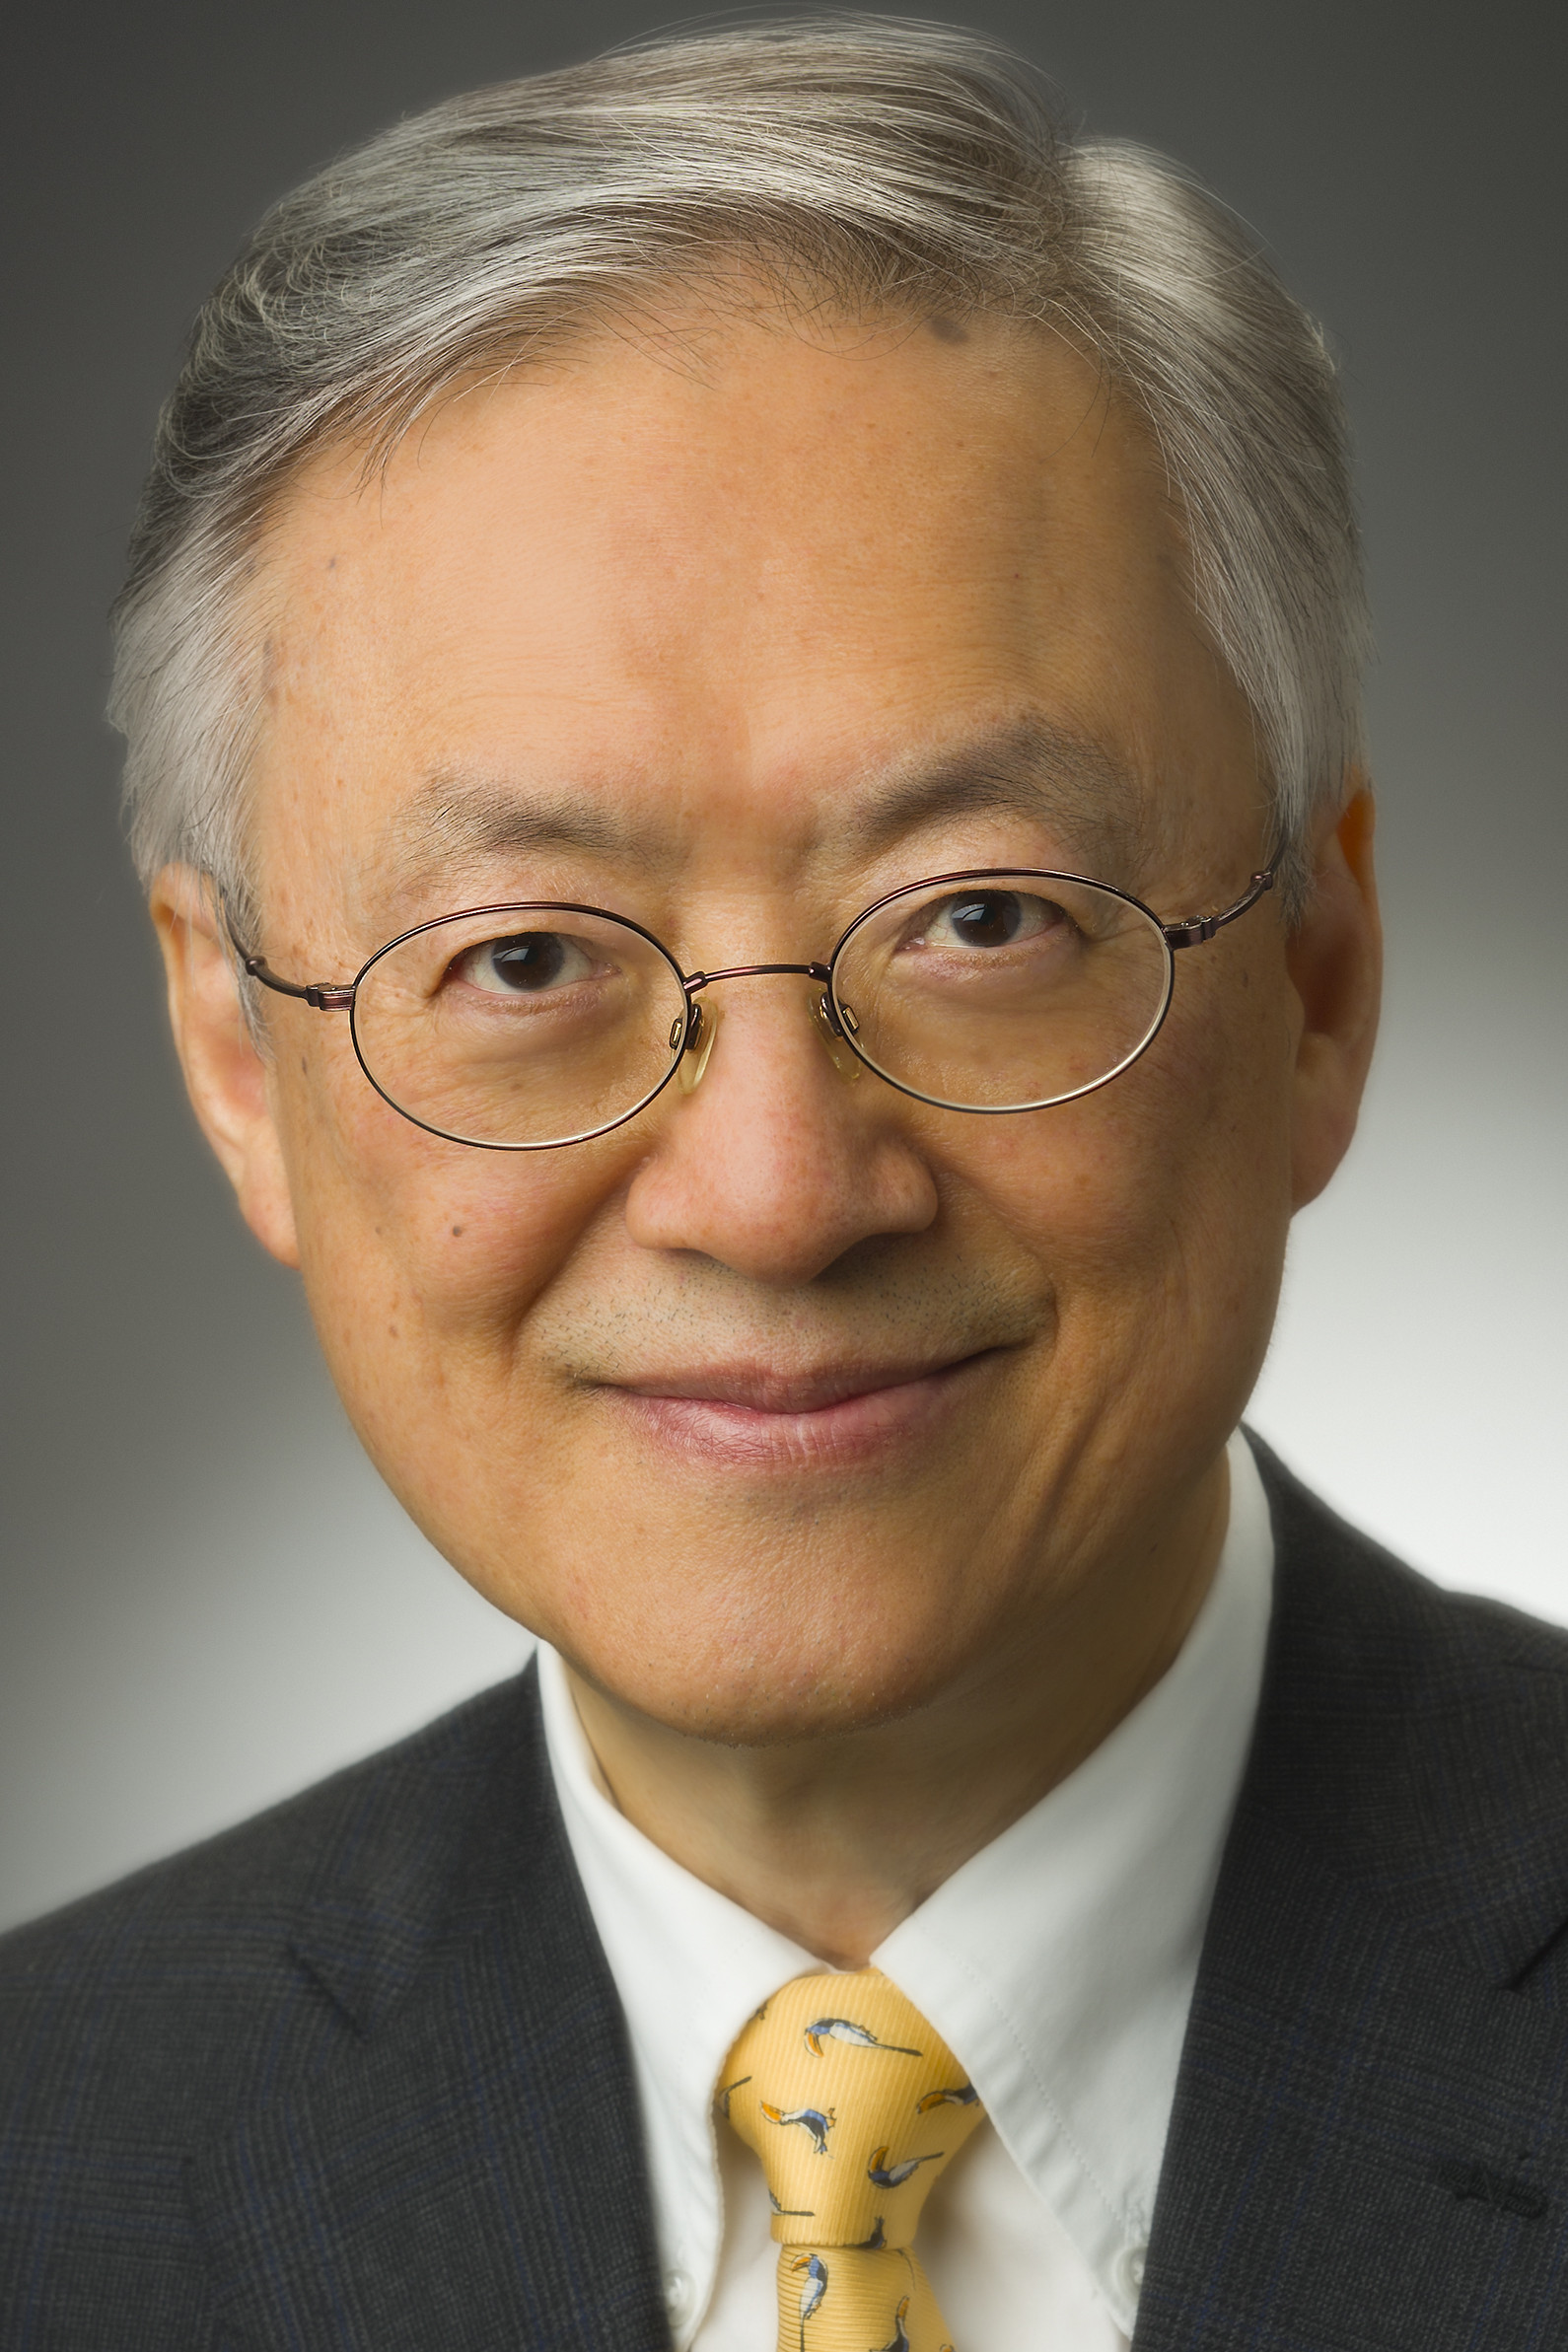 James Chao, Chairman of The Board, Westlake Chemical Corporation